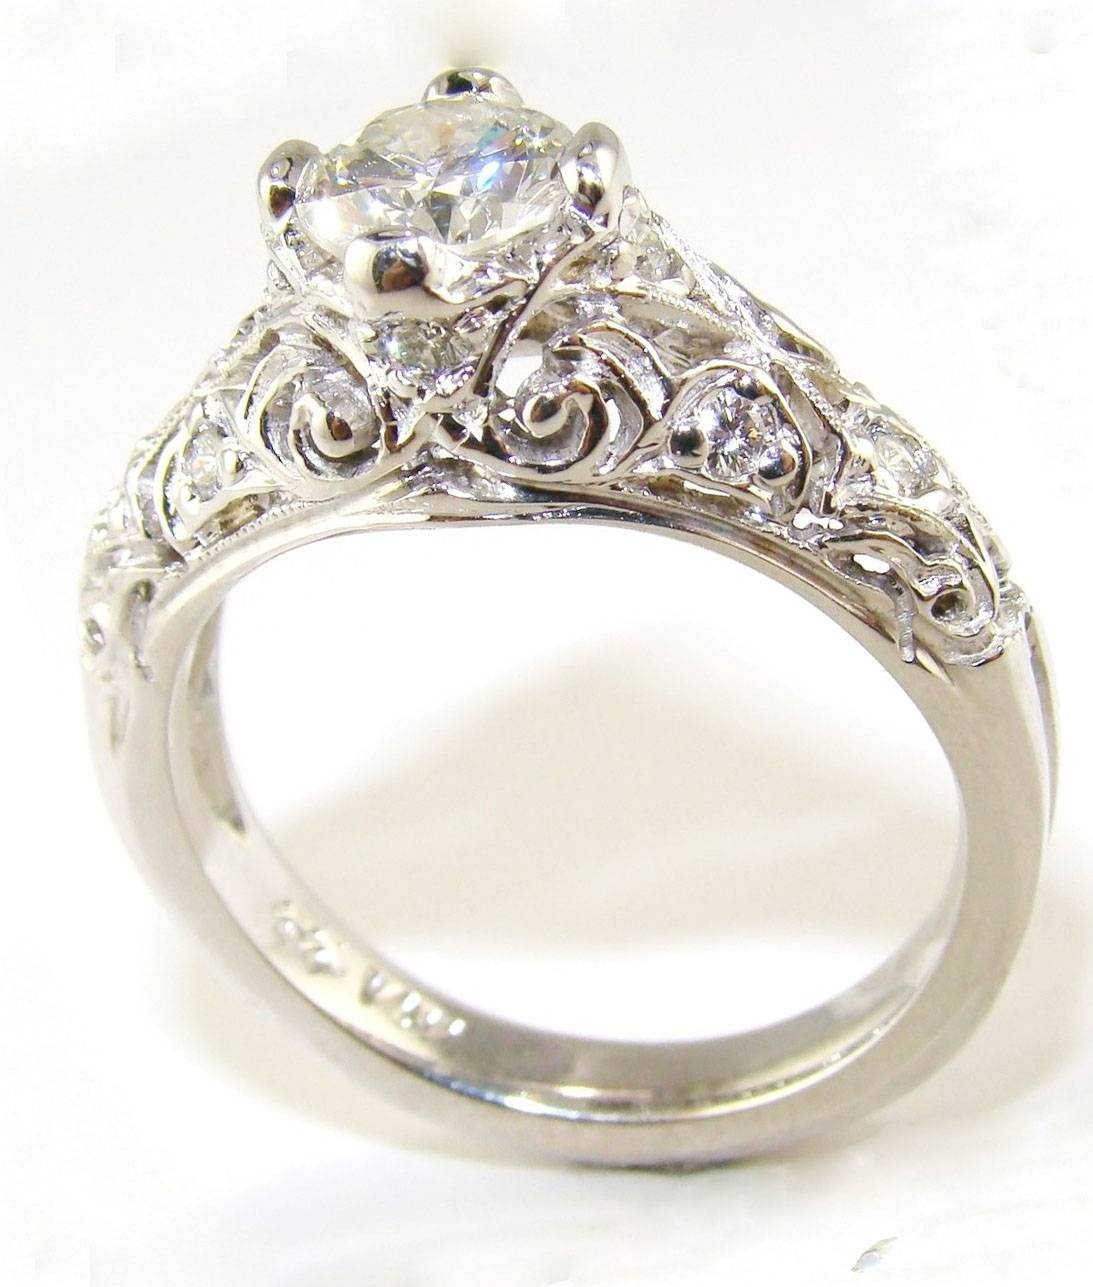 Vintage Diamond Engagement Rings For Women Throughout Womans Engagement Rings (Gallery 14 of 15)